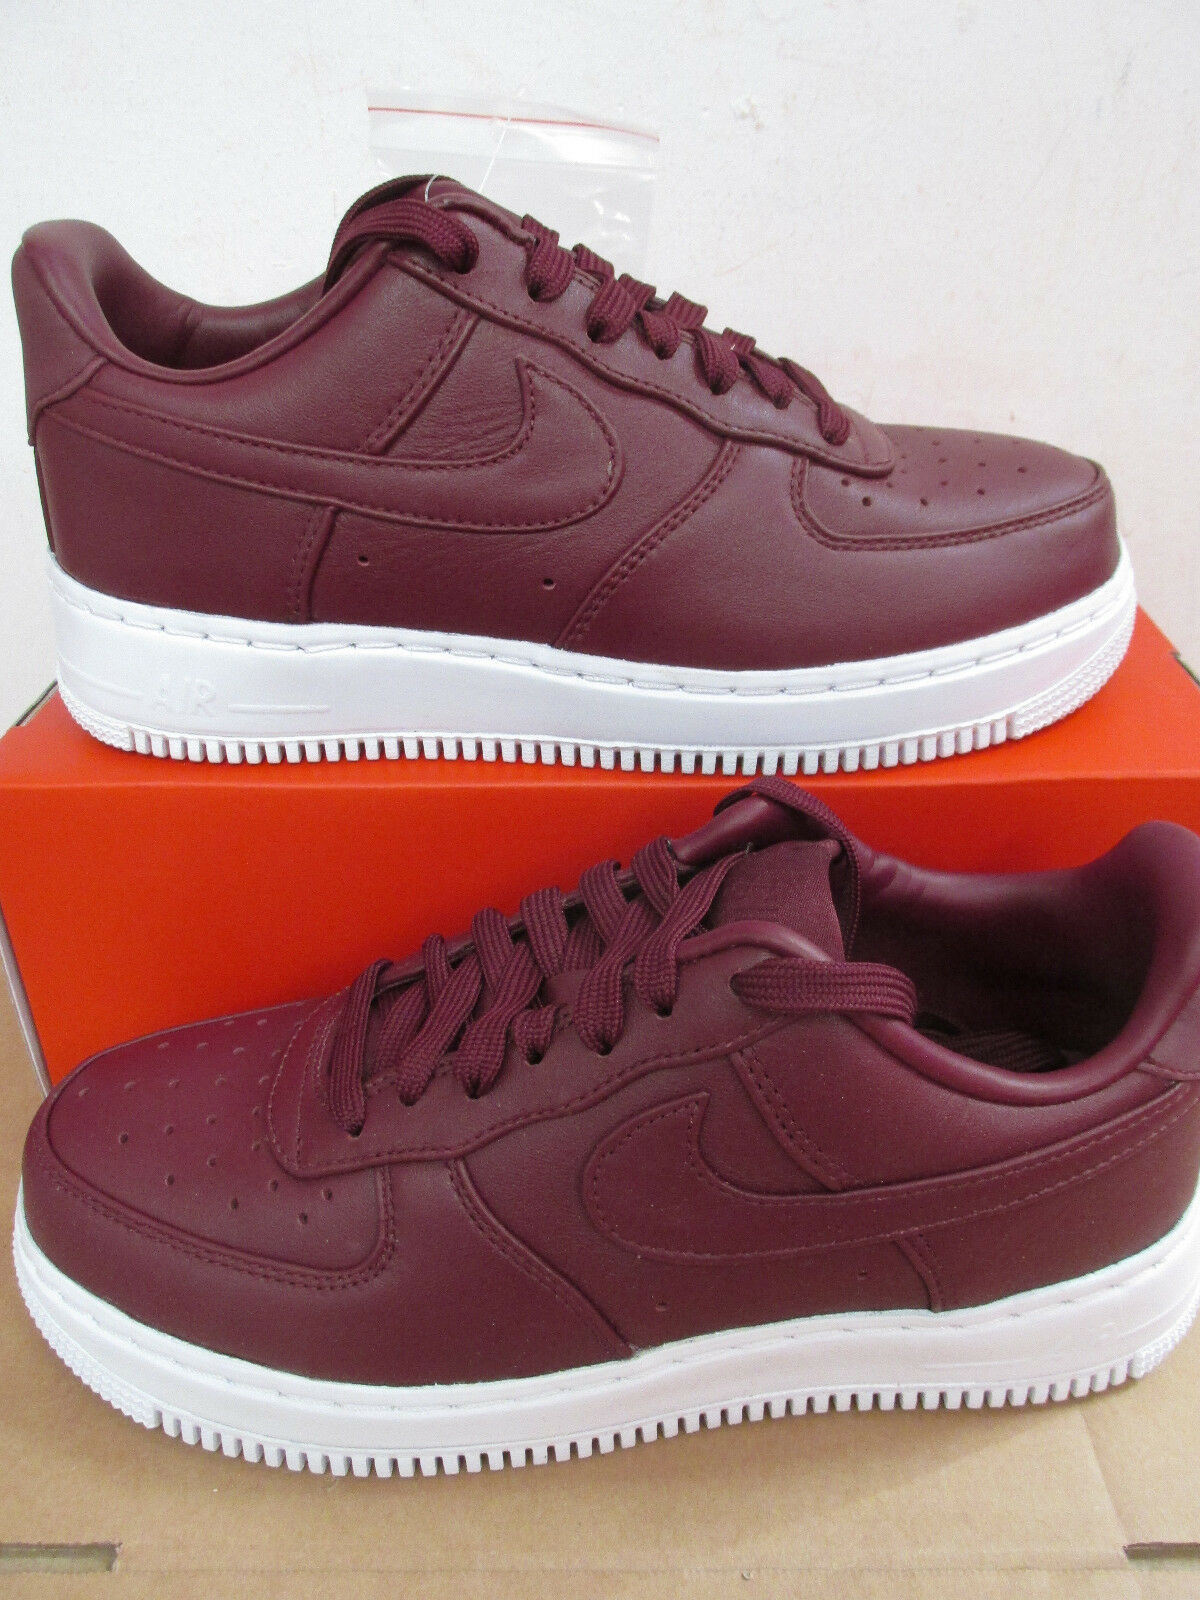 Nikelab air force 1 low mens running trainers 555106 661 Turnschuhe CLEARANCE